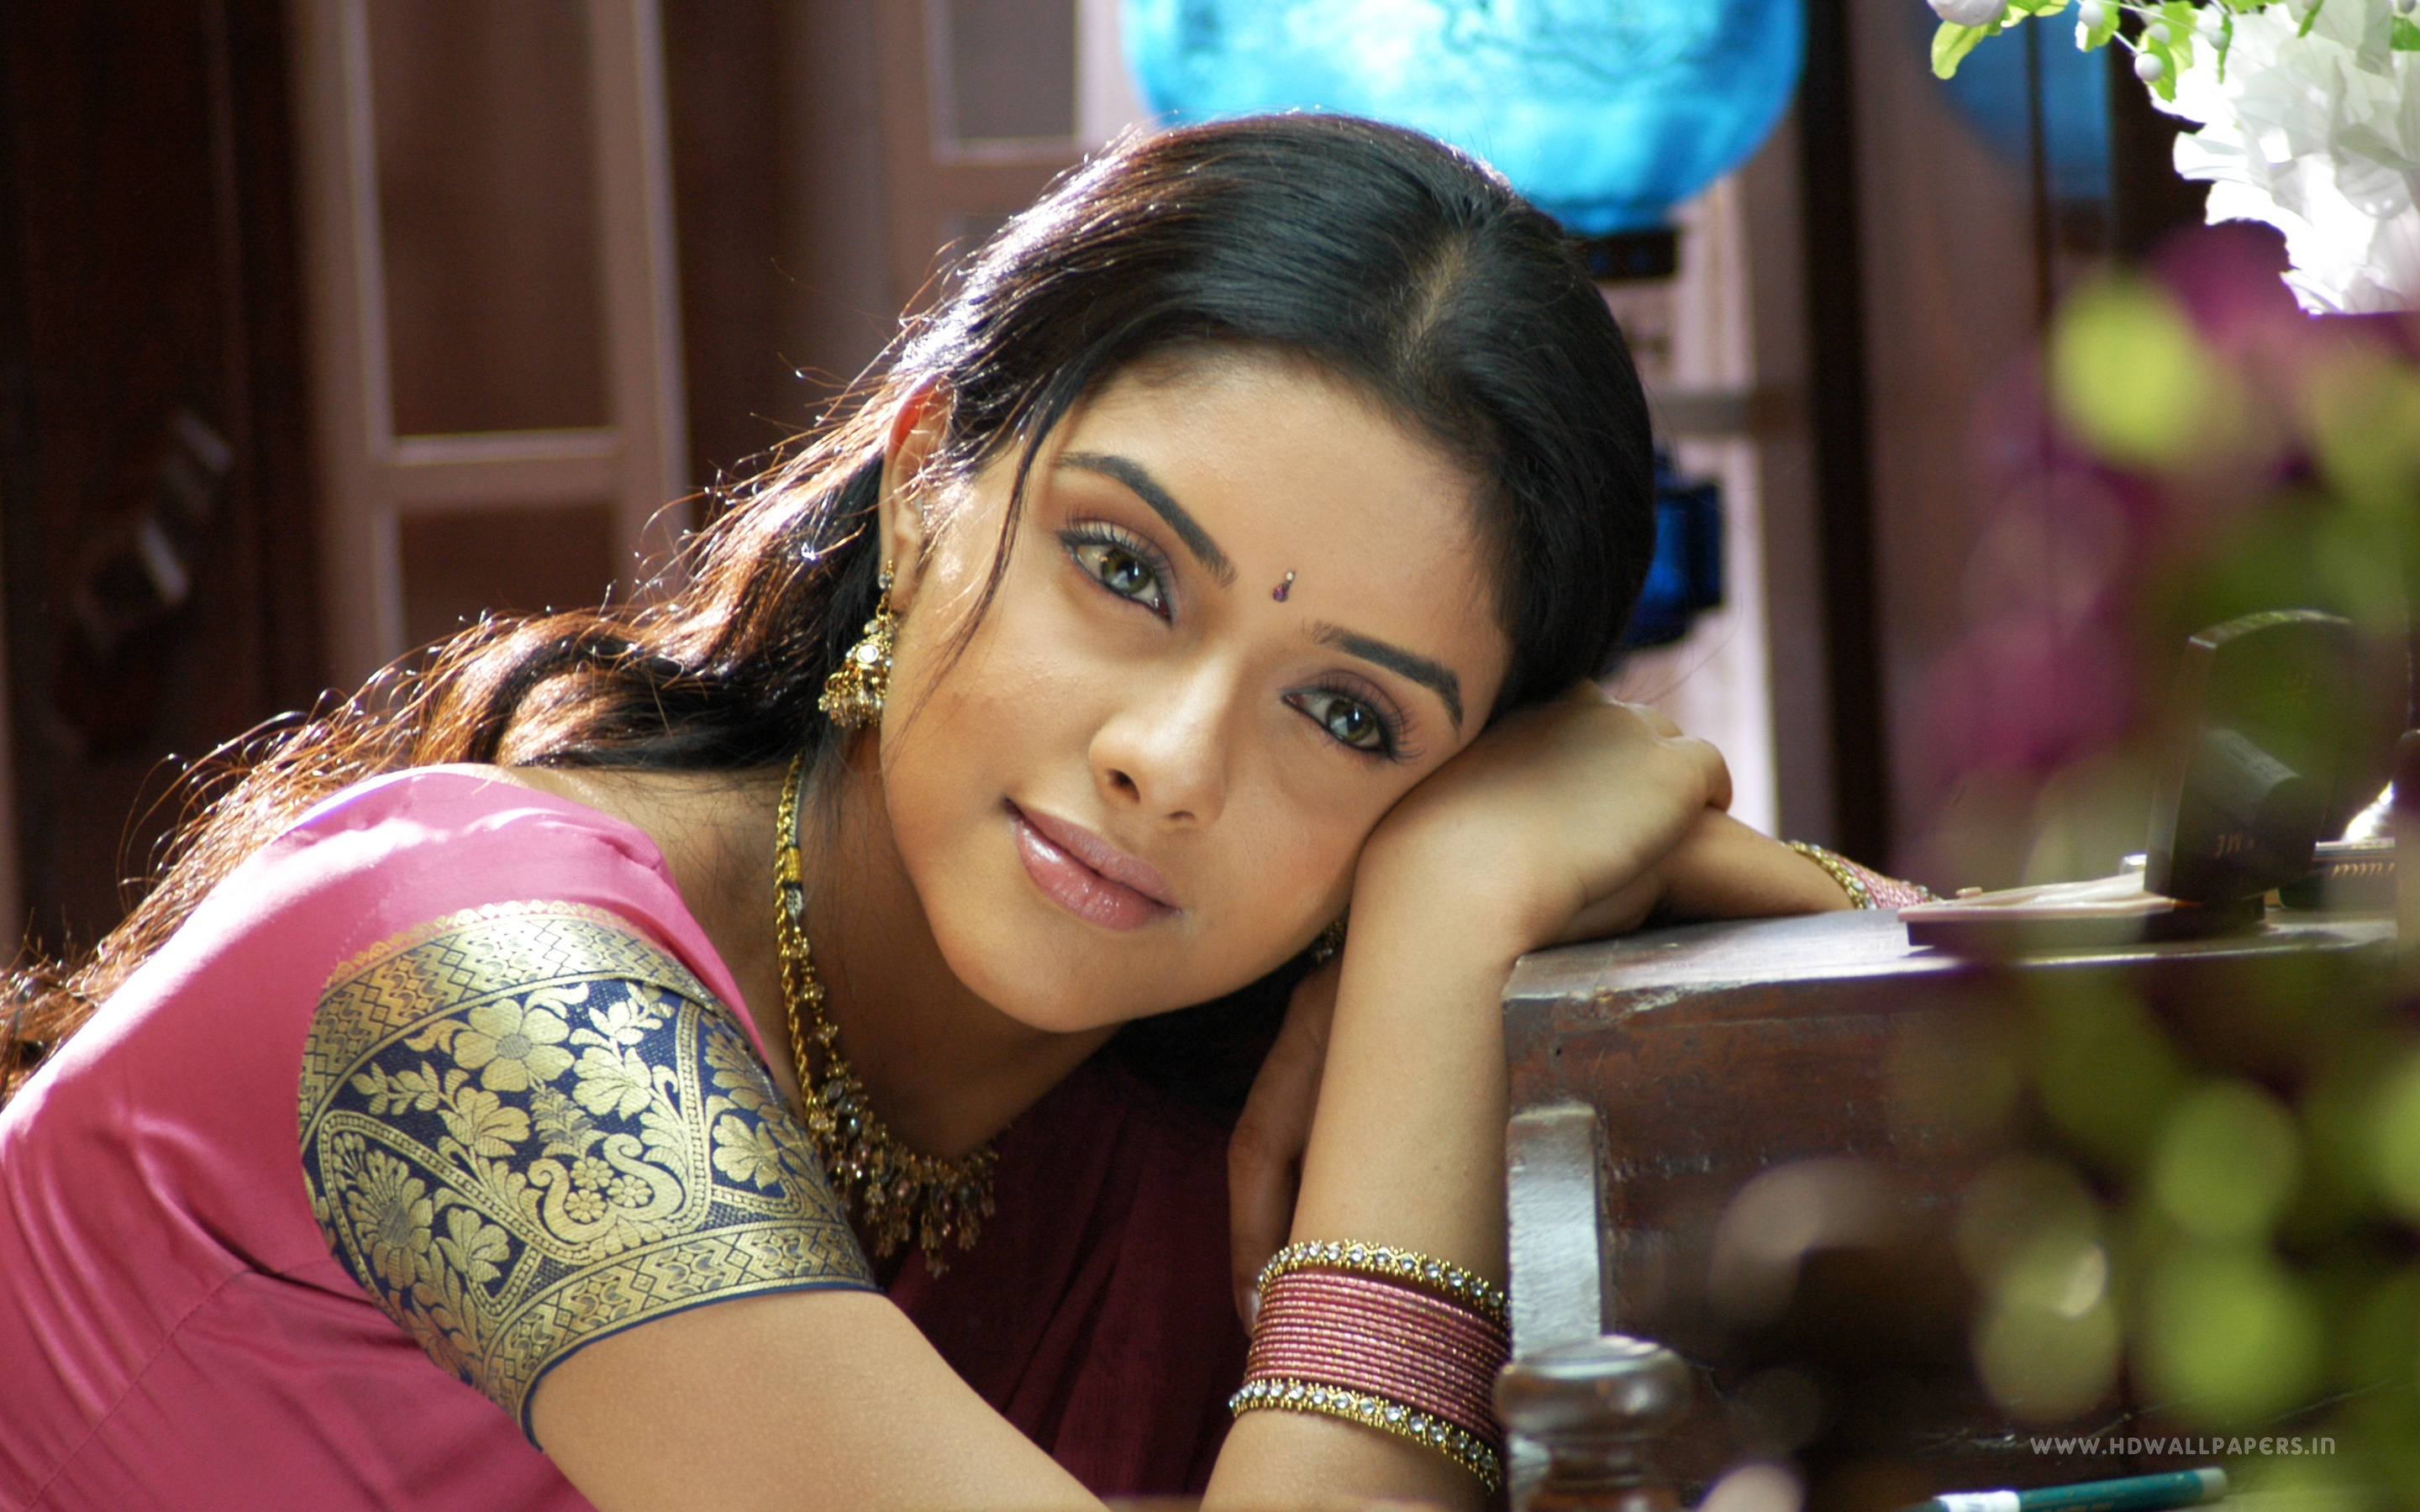 south actress asin wallpapers in jpg format for free download